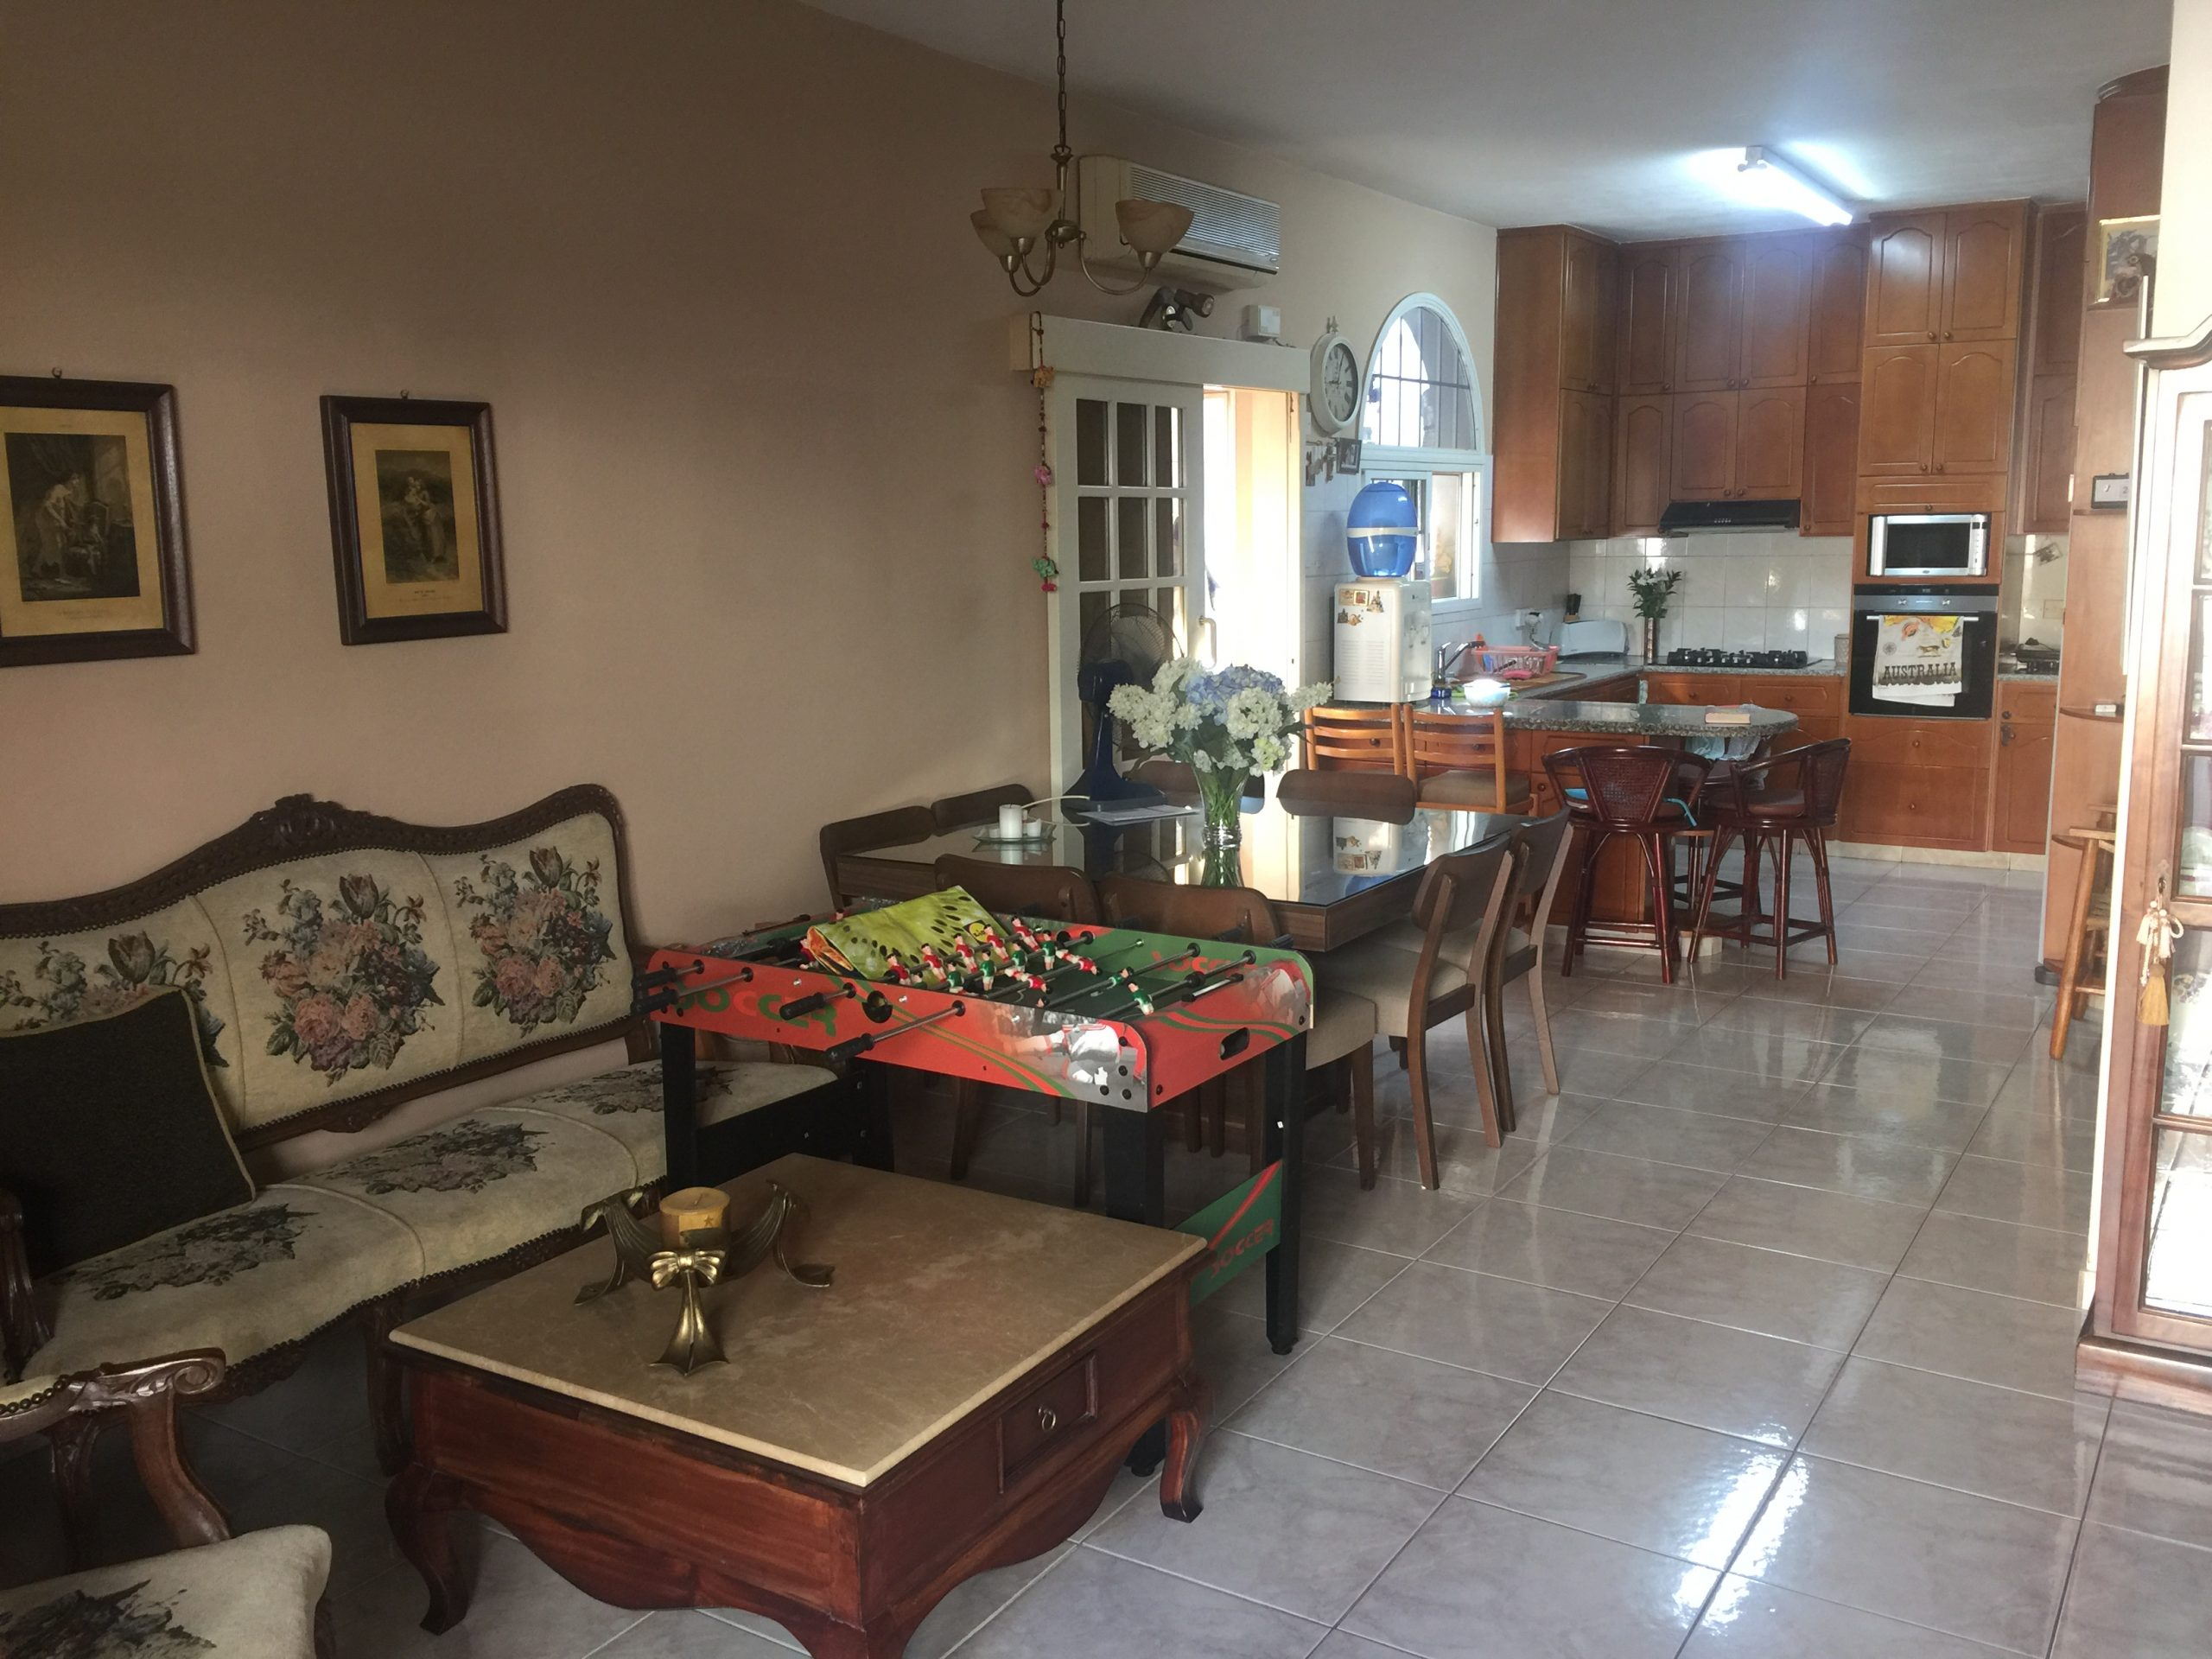 Ground floor house 3 bedroom with extra 2 rooms in Neapolis Limassol